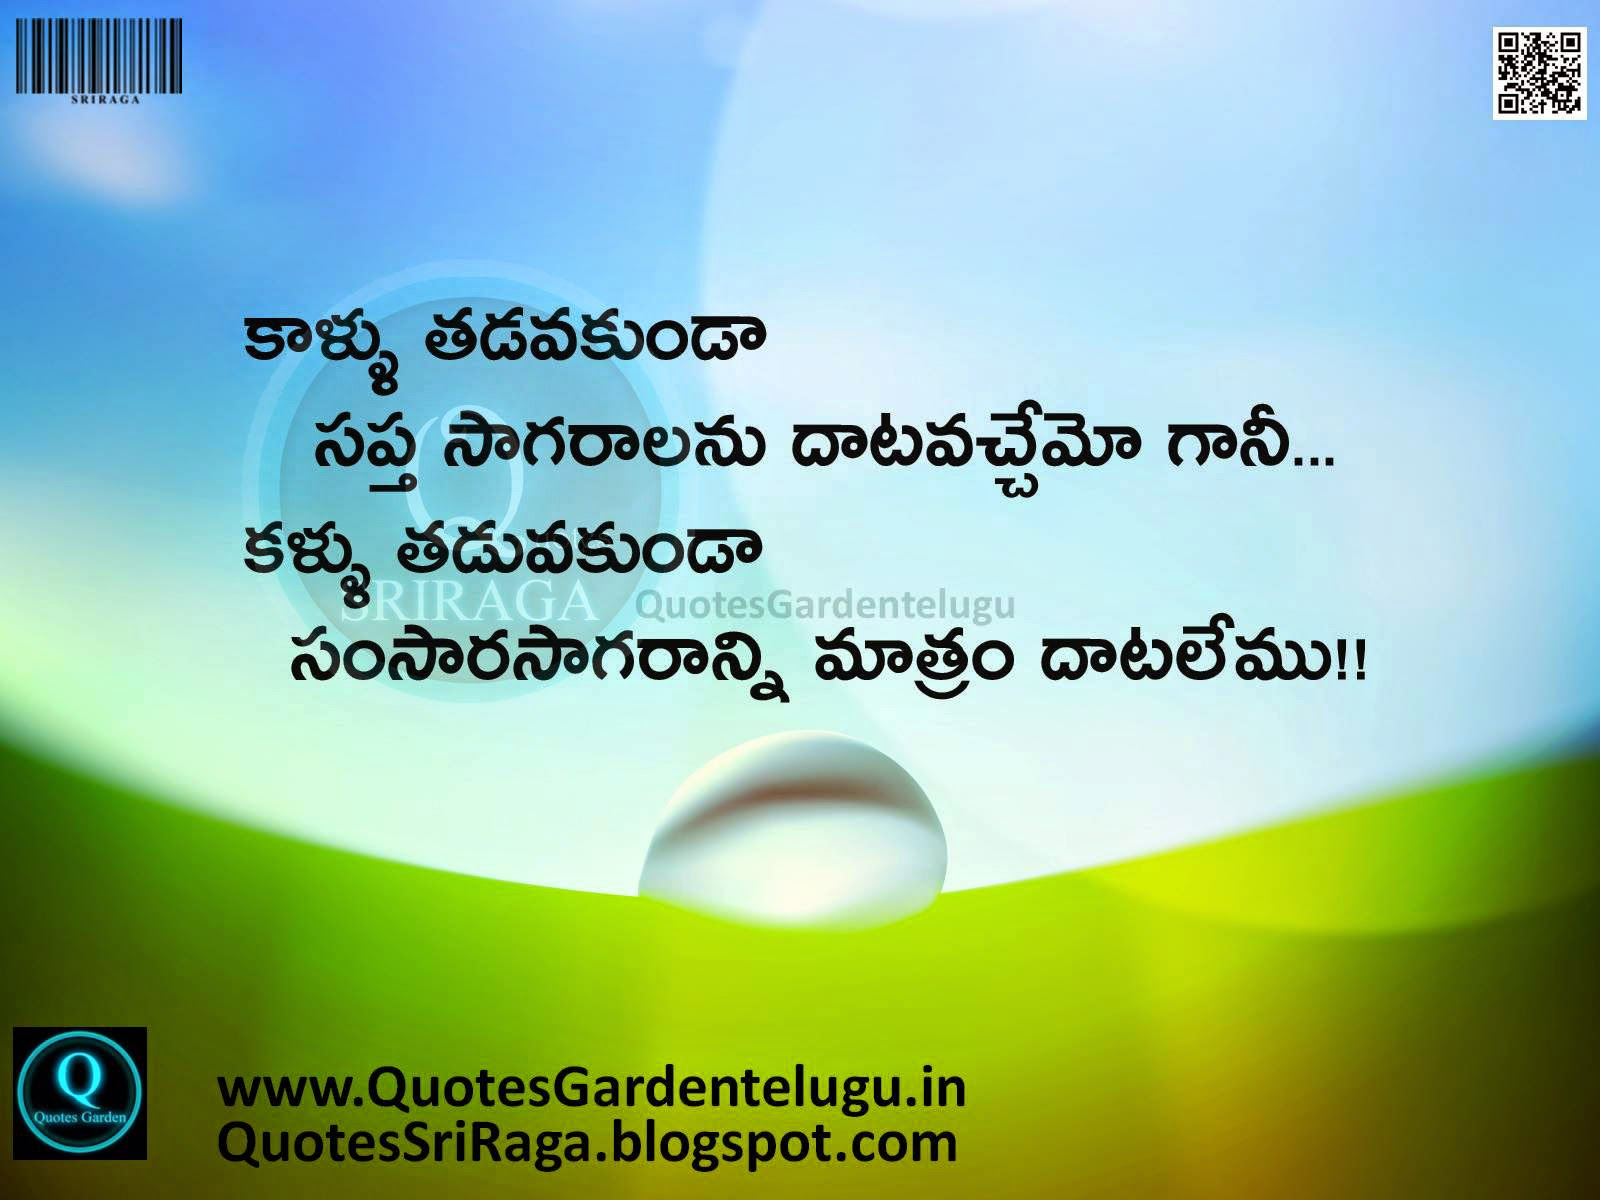 Best telugu life quotes- Life quotes in telugu - Best inspirational quotes about life - Best telugu inspirational quotes - Best telugu inspirational quotes about life - Best telugu Quotes